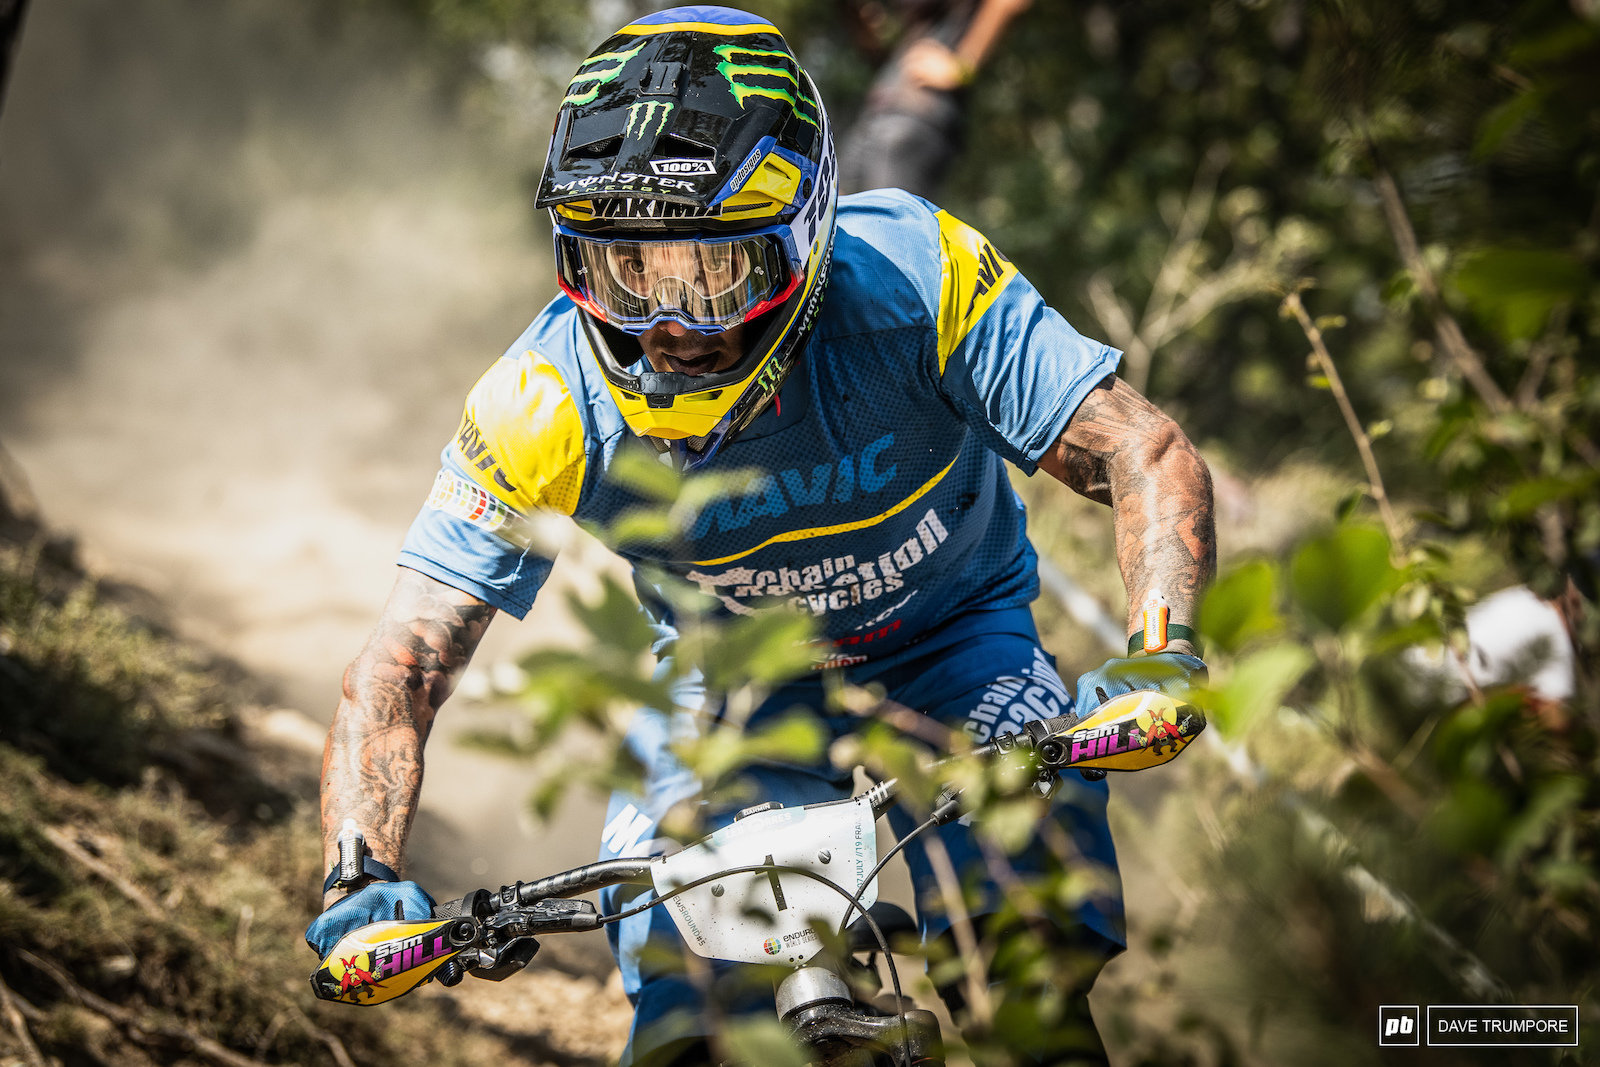 Sam Hill chasing hard and on a mission to claw back time. He ended the day in 38th